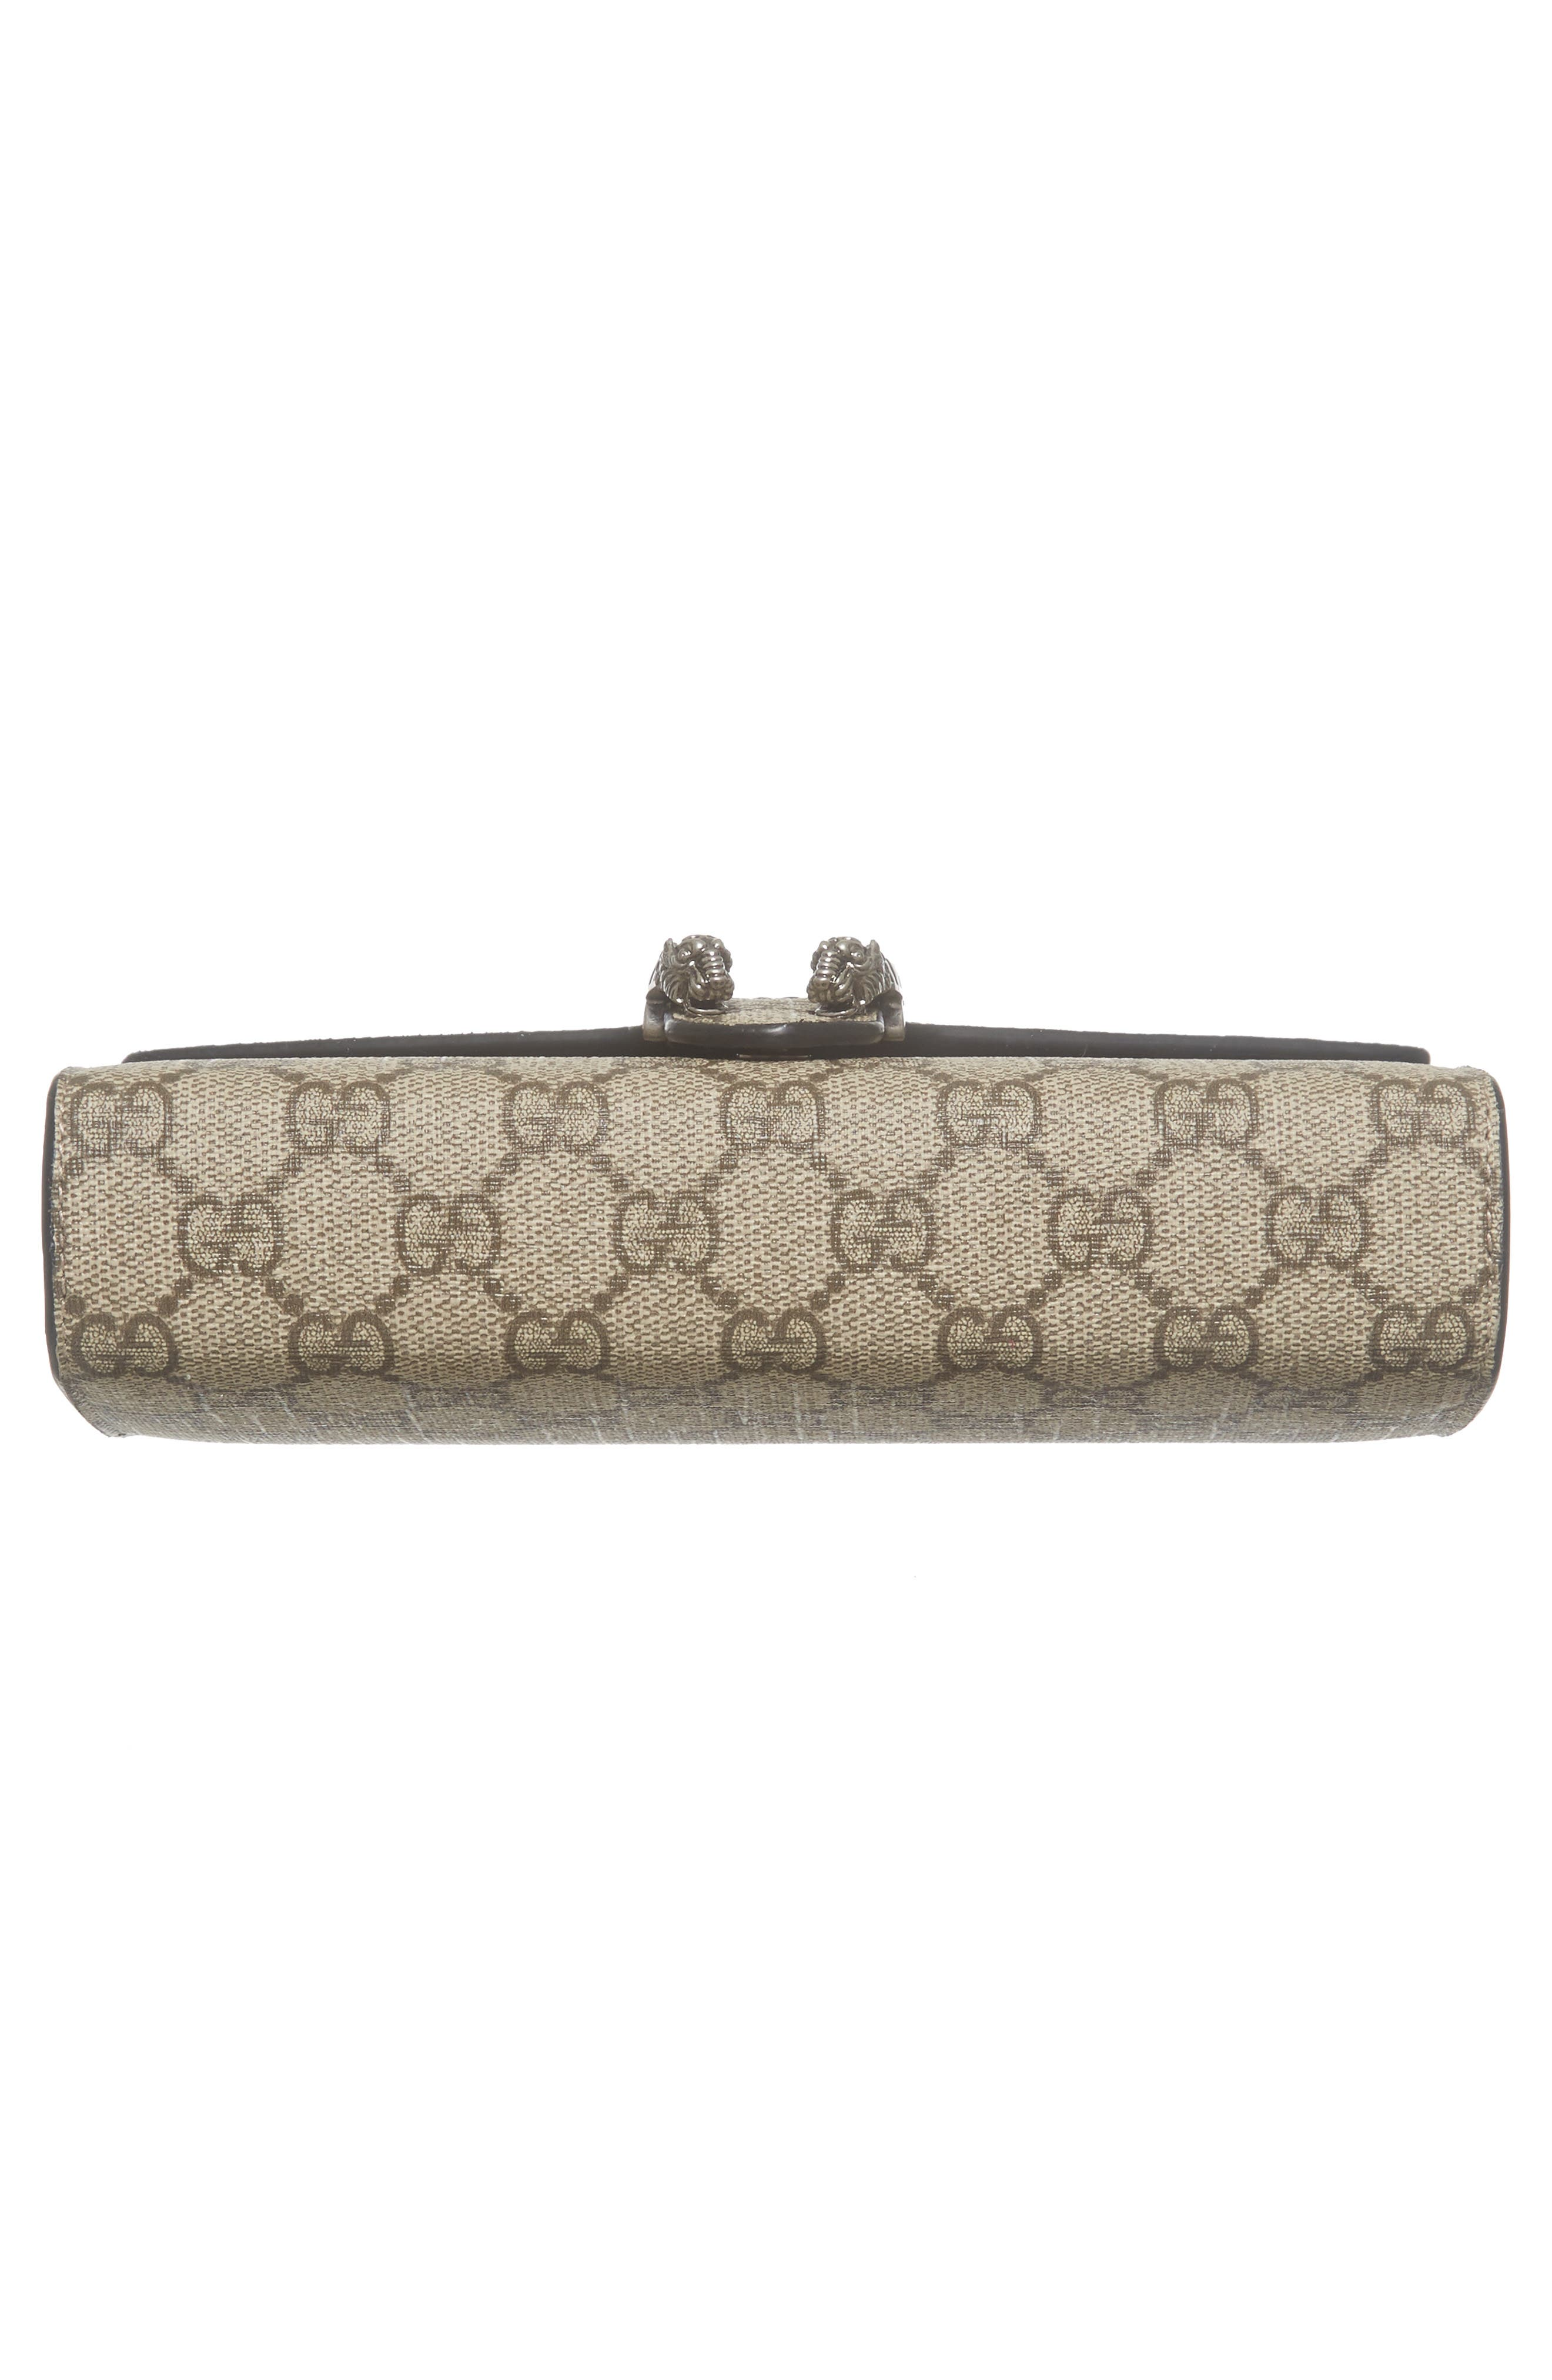 GUCCI, Dionysus GG Supreme Canvas Wallet on a Chain, Alternate thumbnail 6, color, BEIGE EBONY/NERO